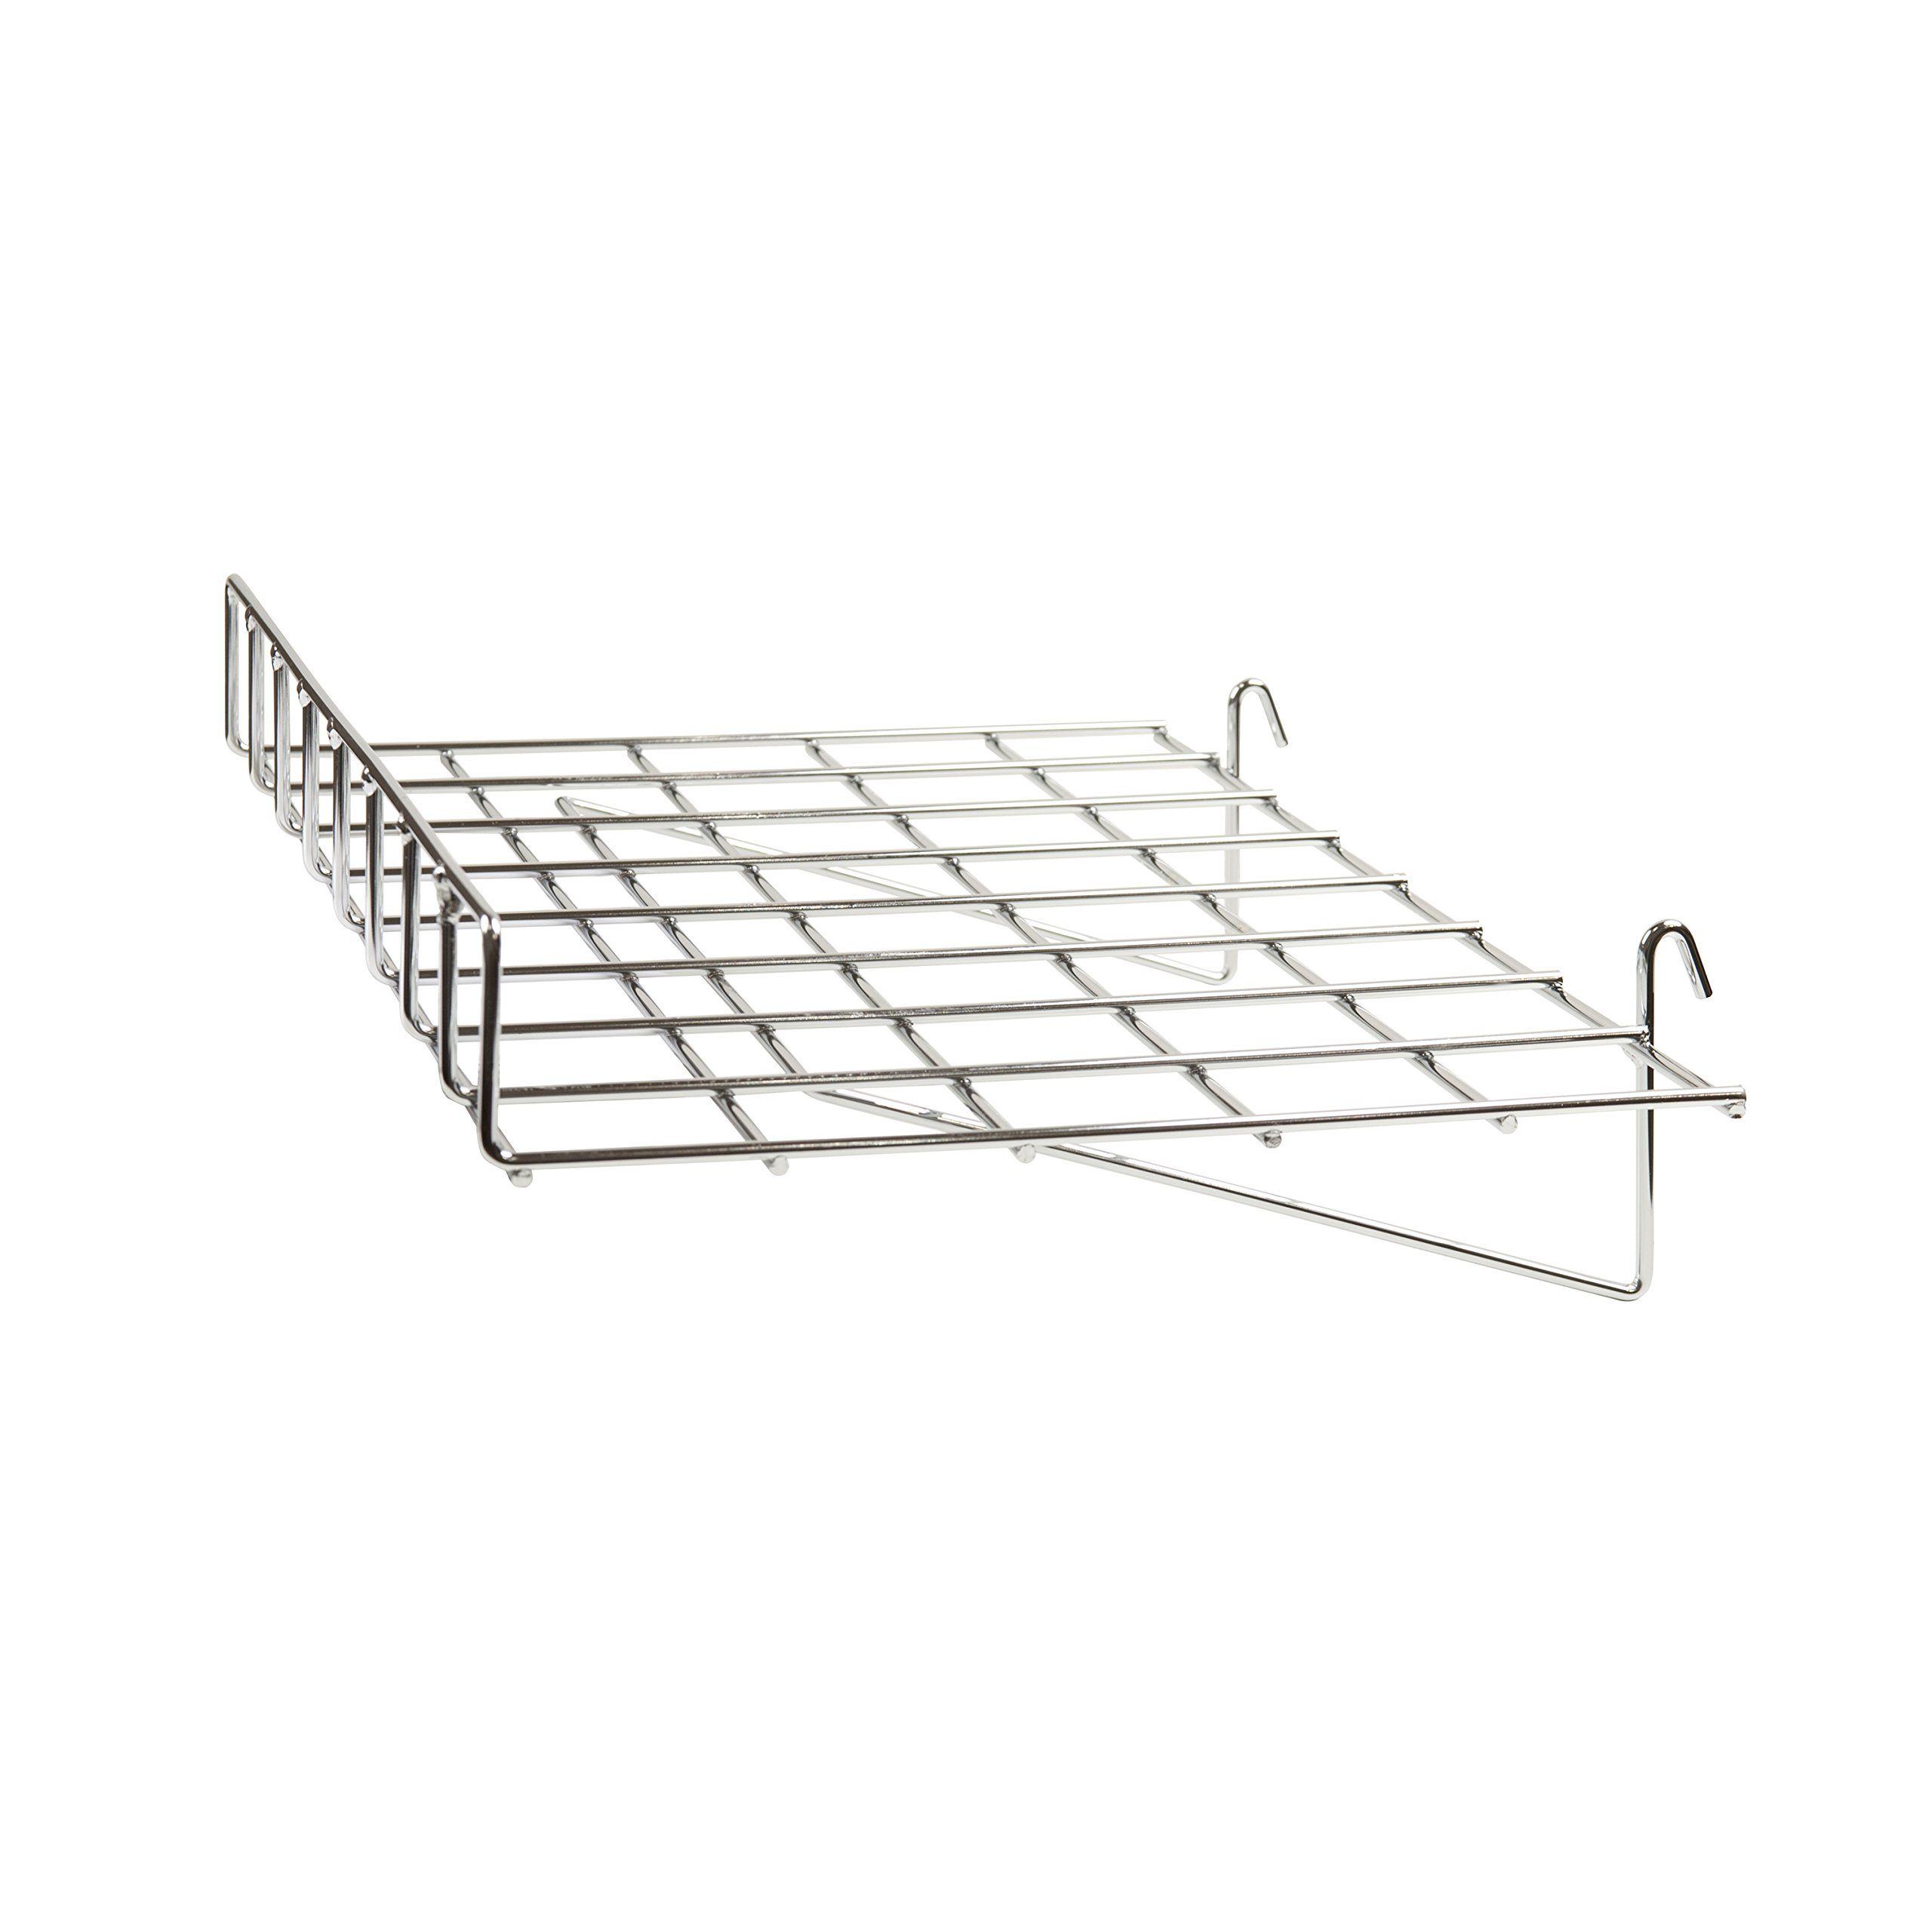 Econoco GWS/93 Straight Shelf with Front Lip, 24'' Length x 15'' Depth (Pack of 4)